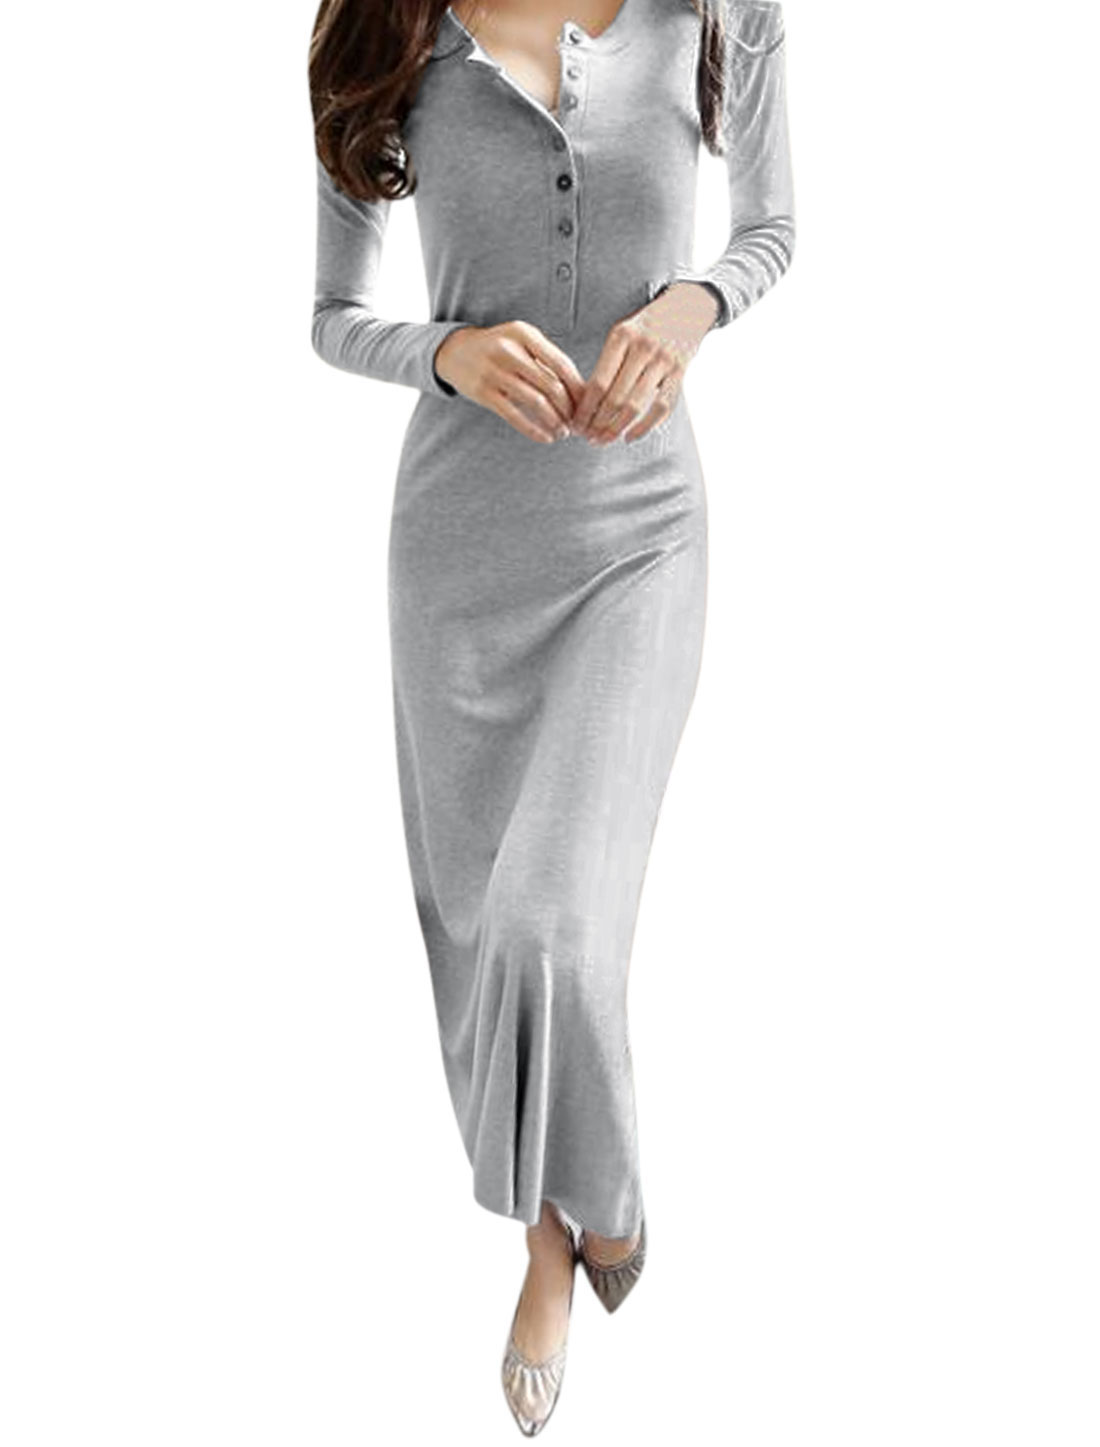 Ladies Long Sleeve Round Neck Button Closure Upper Unlined Maxi Dress Gray M